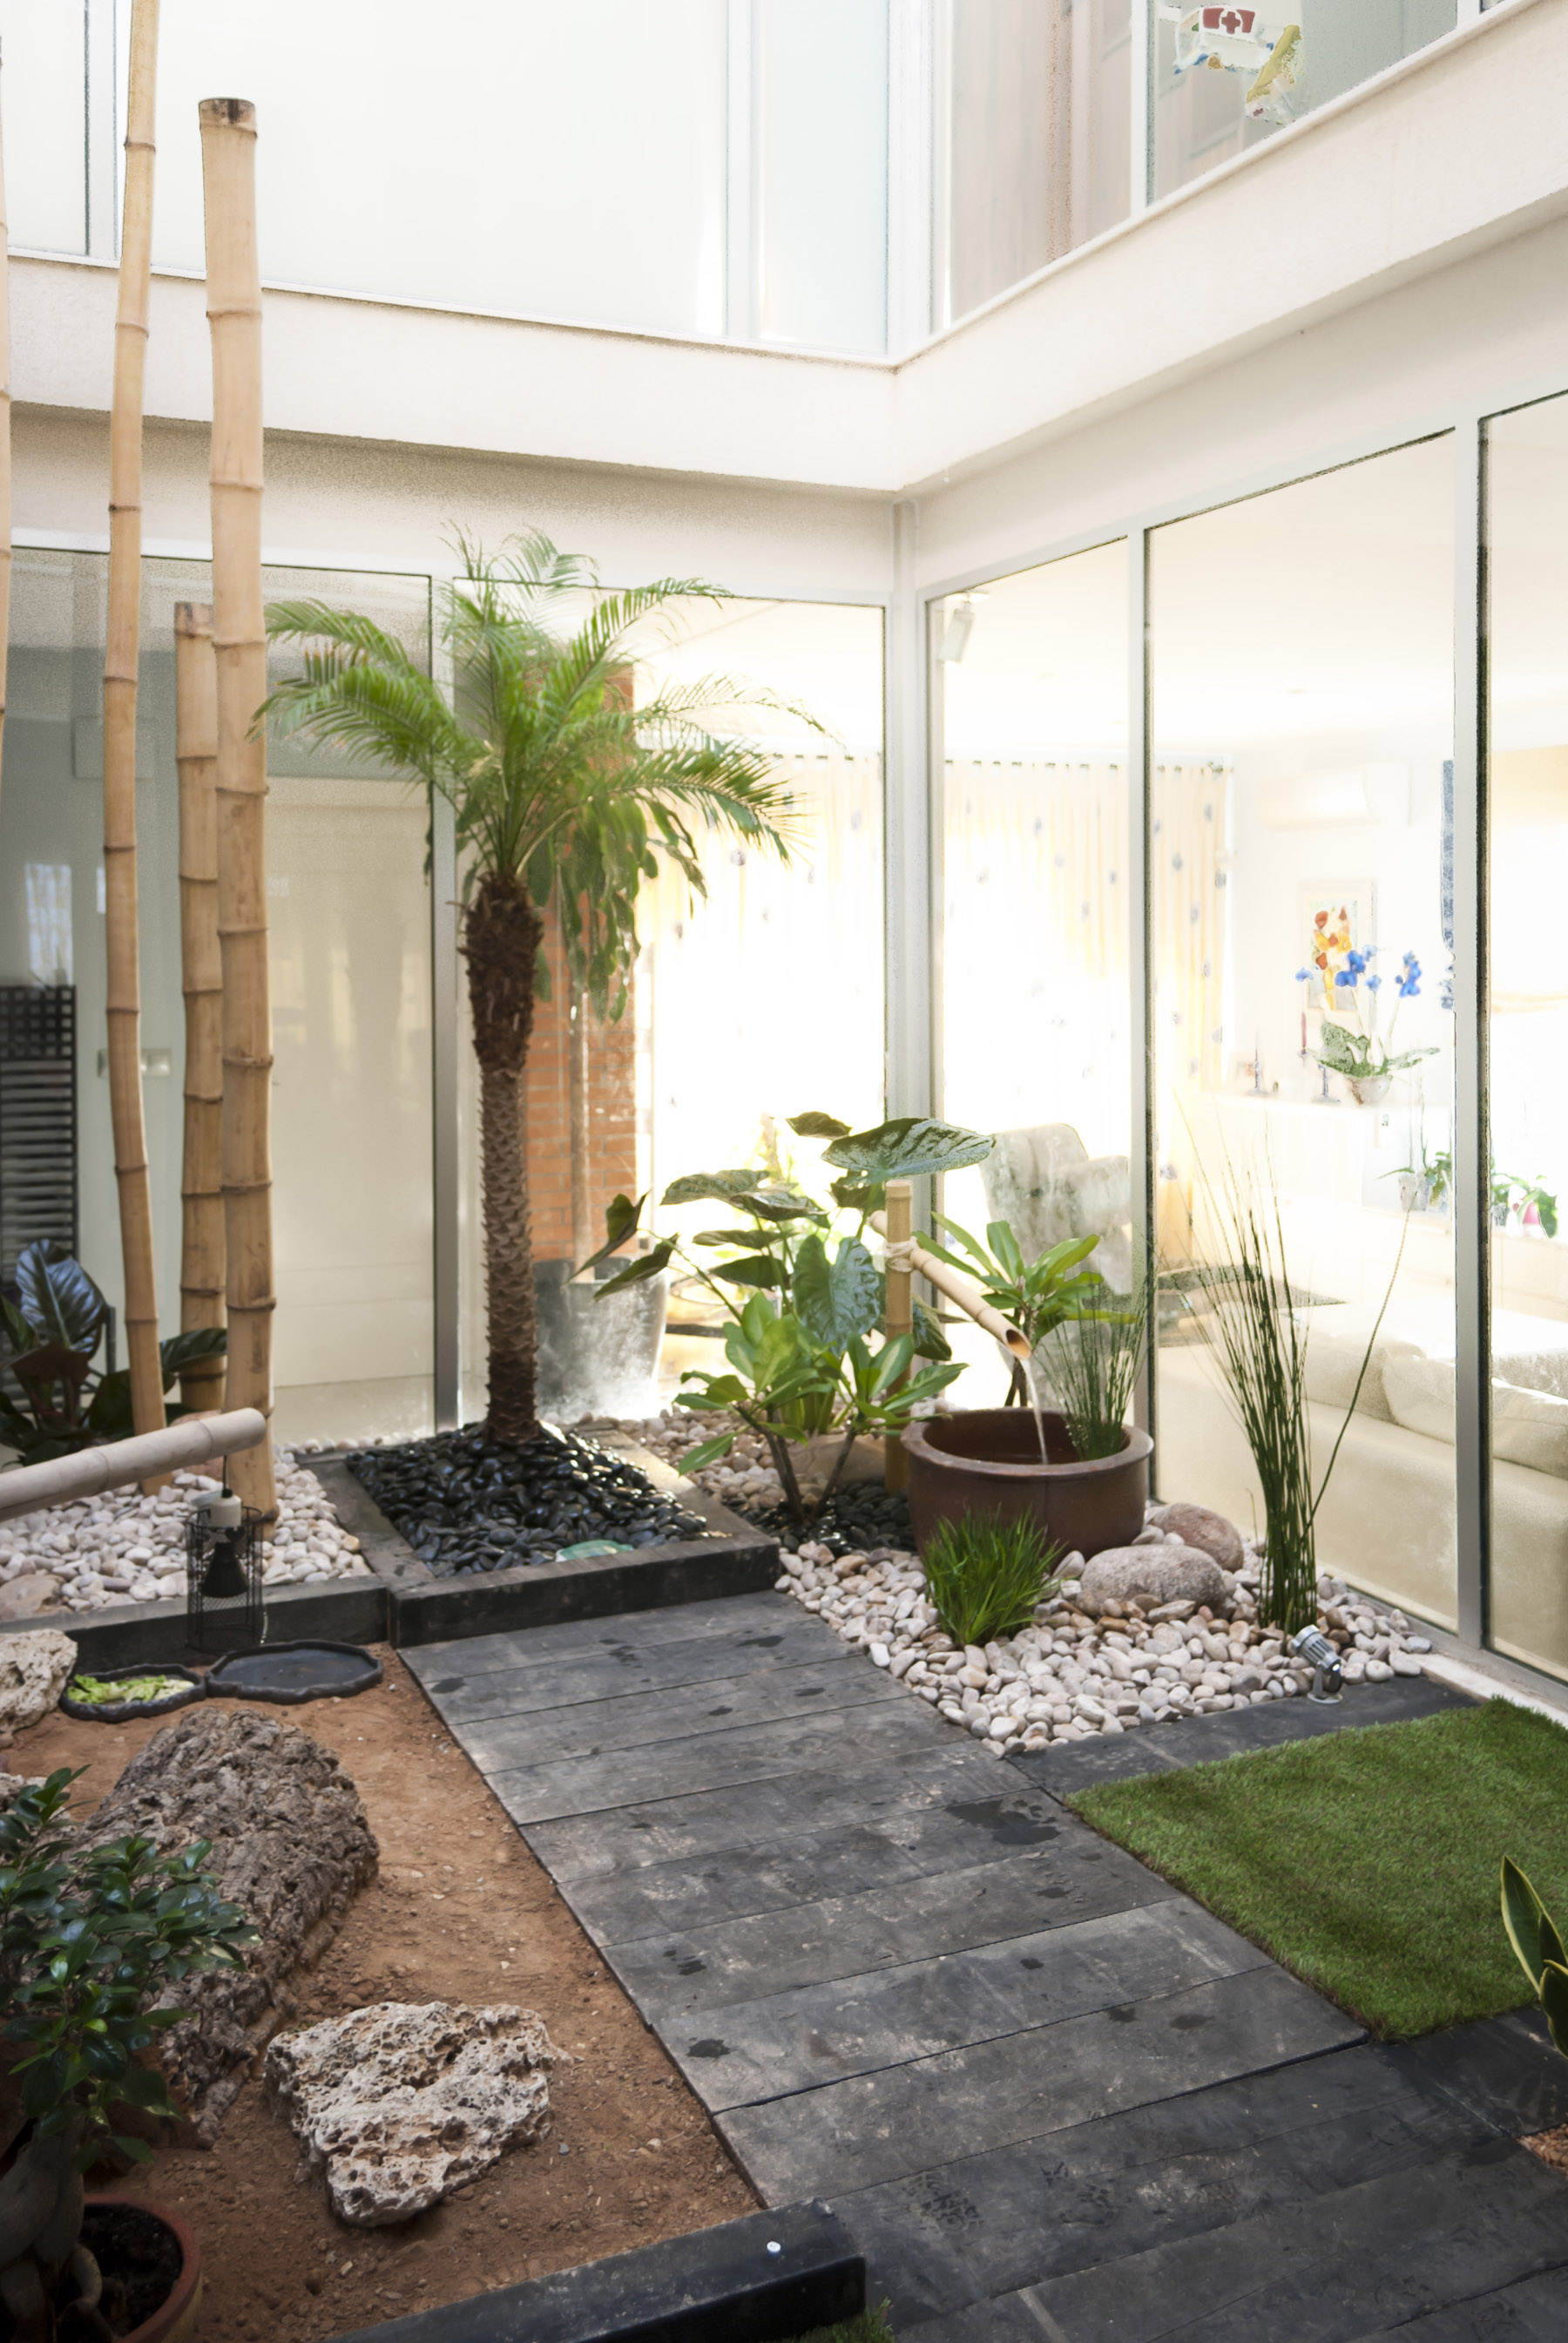 Jardin zen en patio interior david jim nez arquitectura for Jardin japones interior